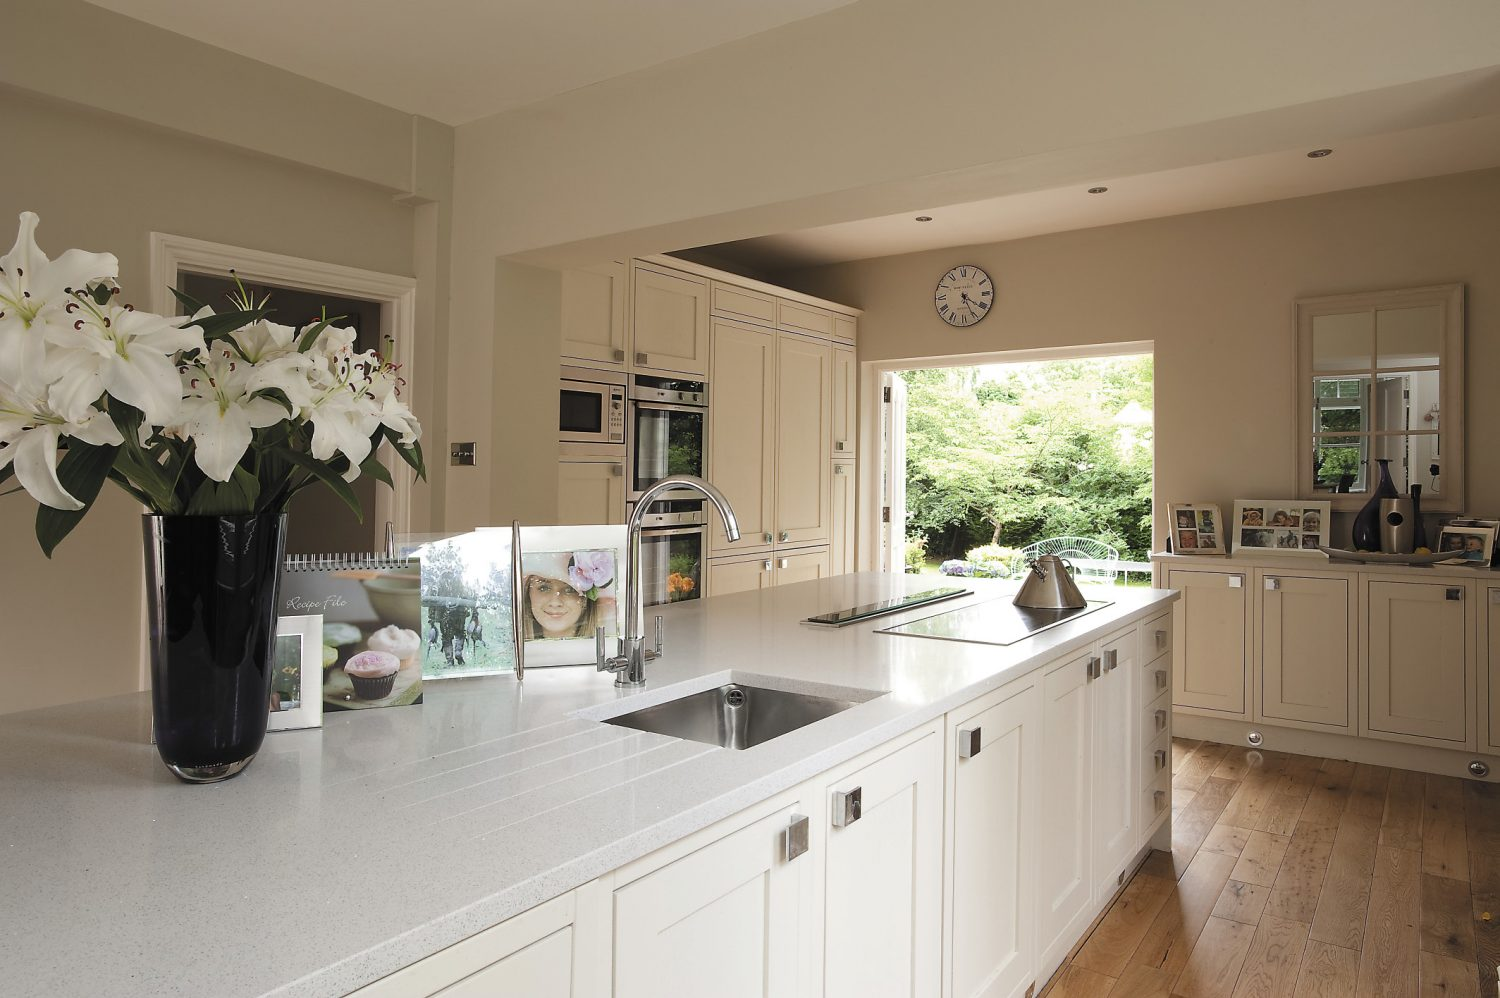 At one end of the kitchen large French doors lead out onto a terrace and down to the lawn